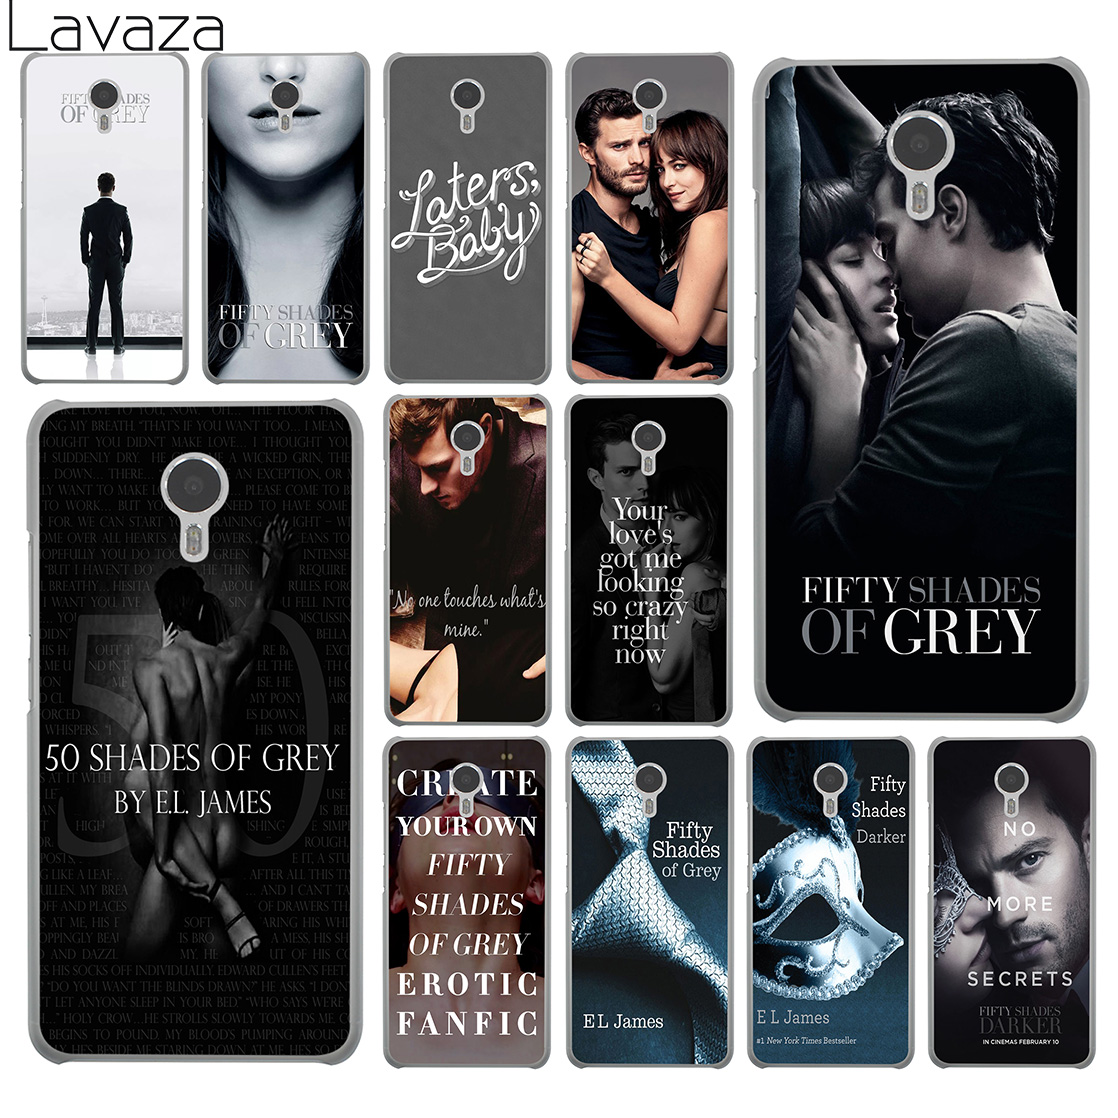 Lavaza Fifty Shades of Grey darker Hard Phone Case for Meizu M6 M5 M5C M5S M3 M3S M2 Mini Note U10 U20 Pro 7 Plus 6 Cover